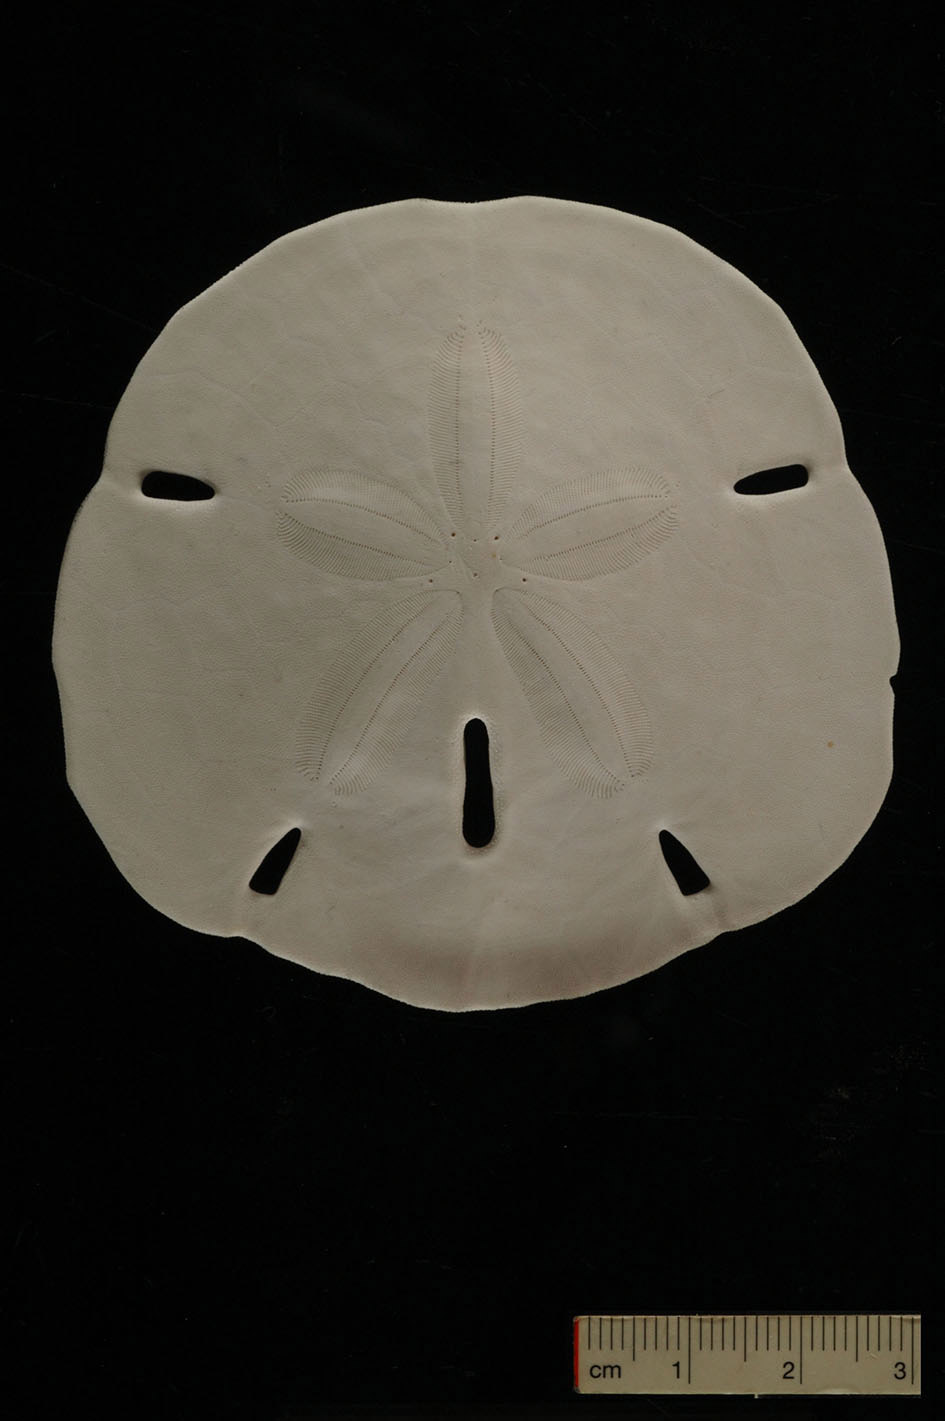 The sand dollar Mellita (Photo Gerber, Tübingen)